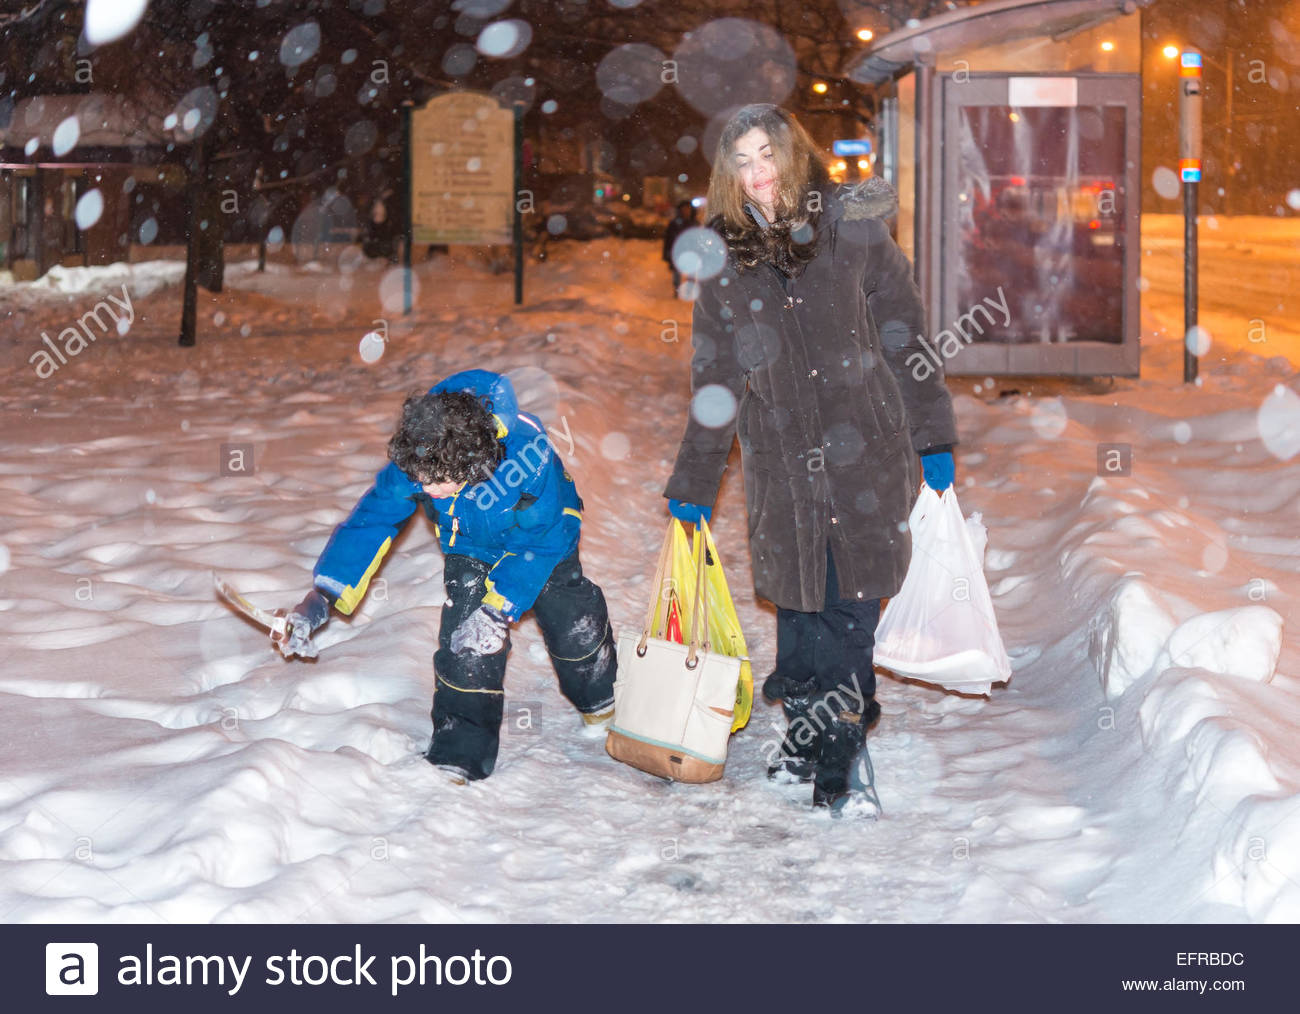 Everyday life of a single mother in Toronto during Winter, after work she picks up her kid,buys groceries and return - Stock Image